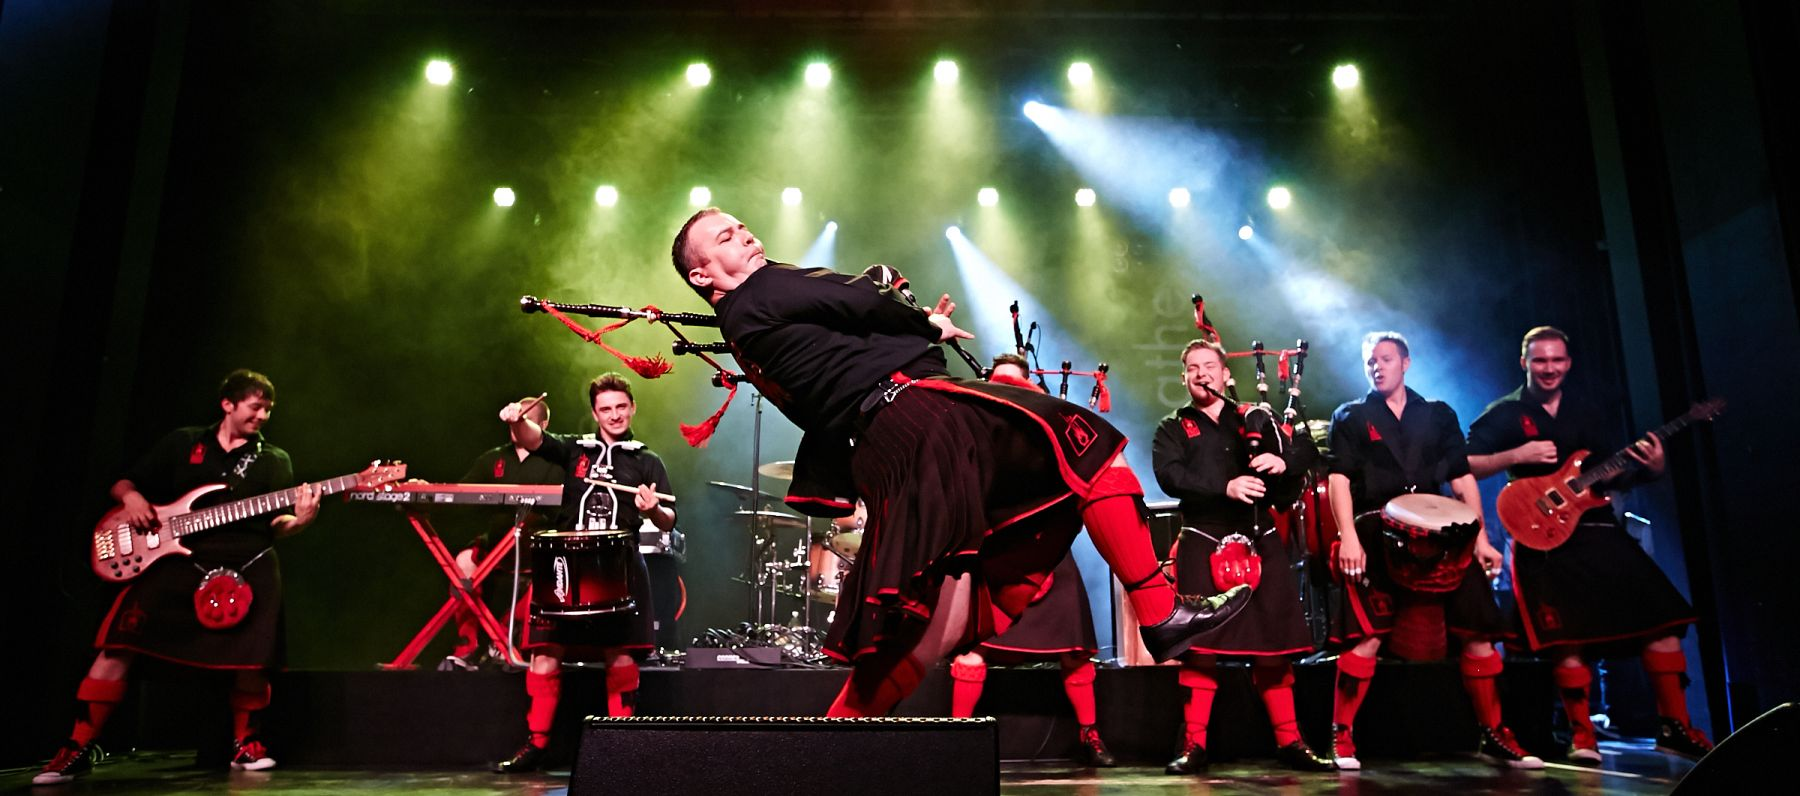 RedHotChilliPipers